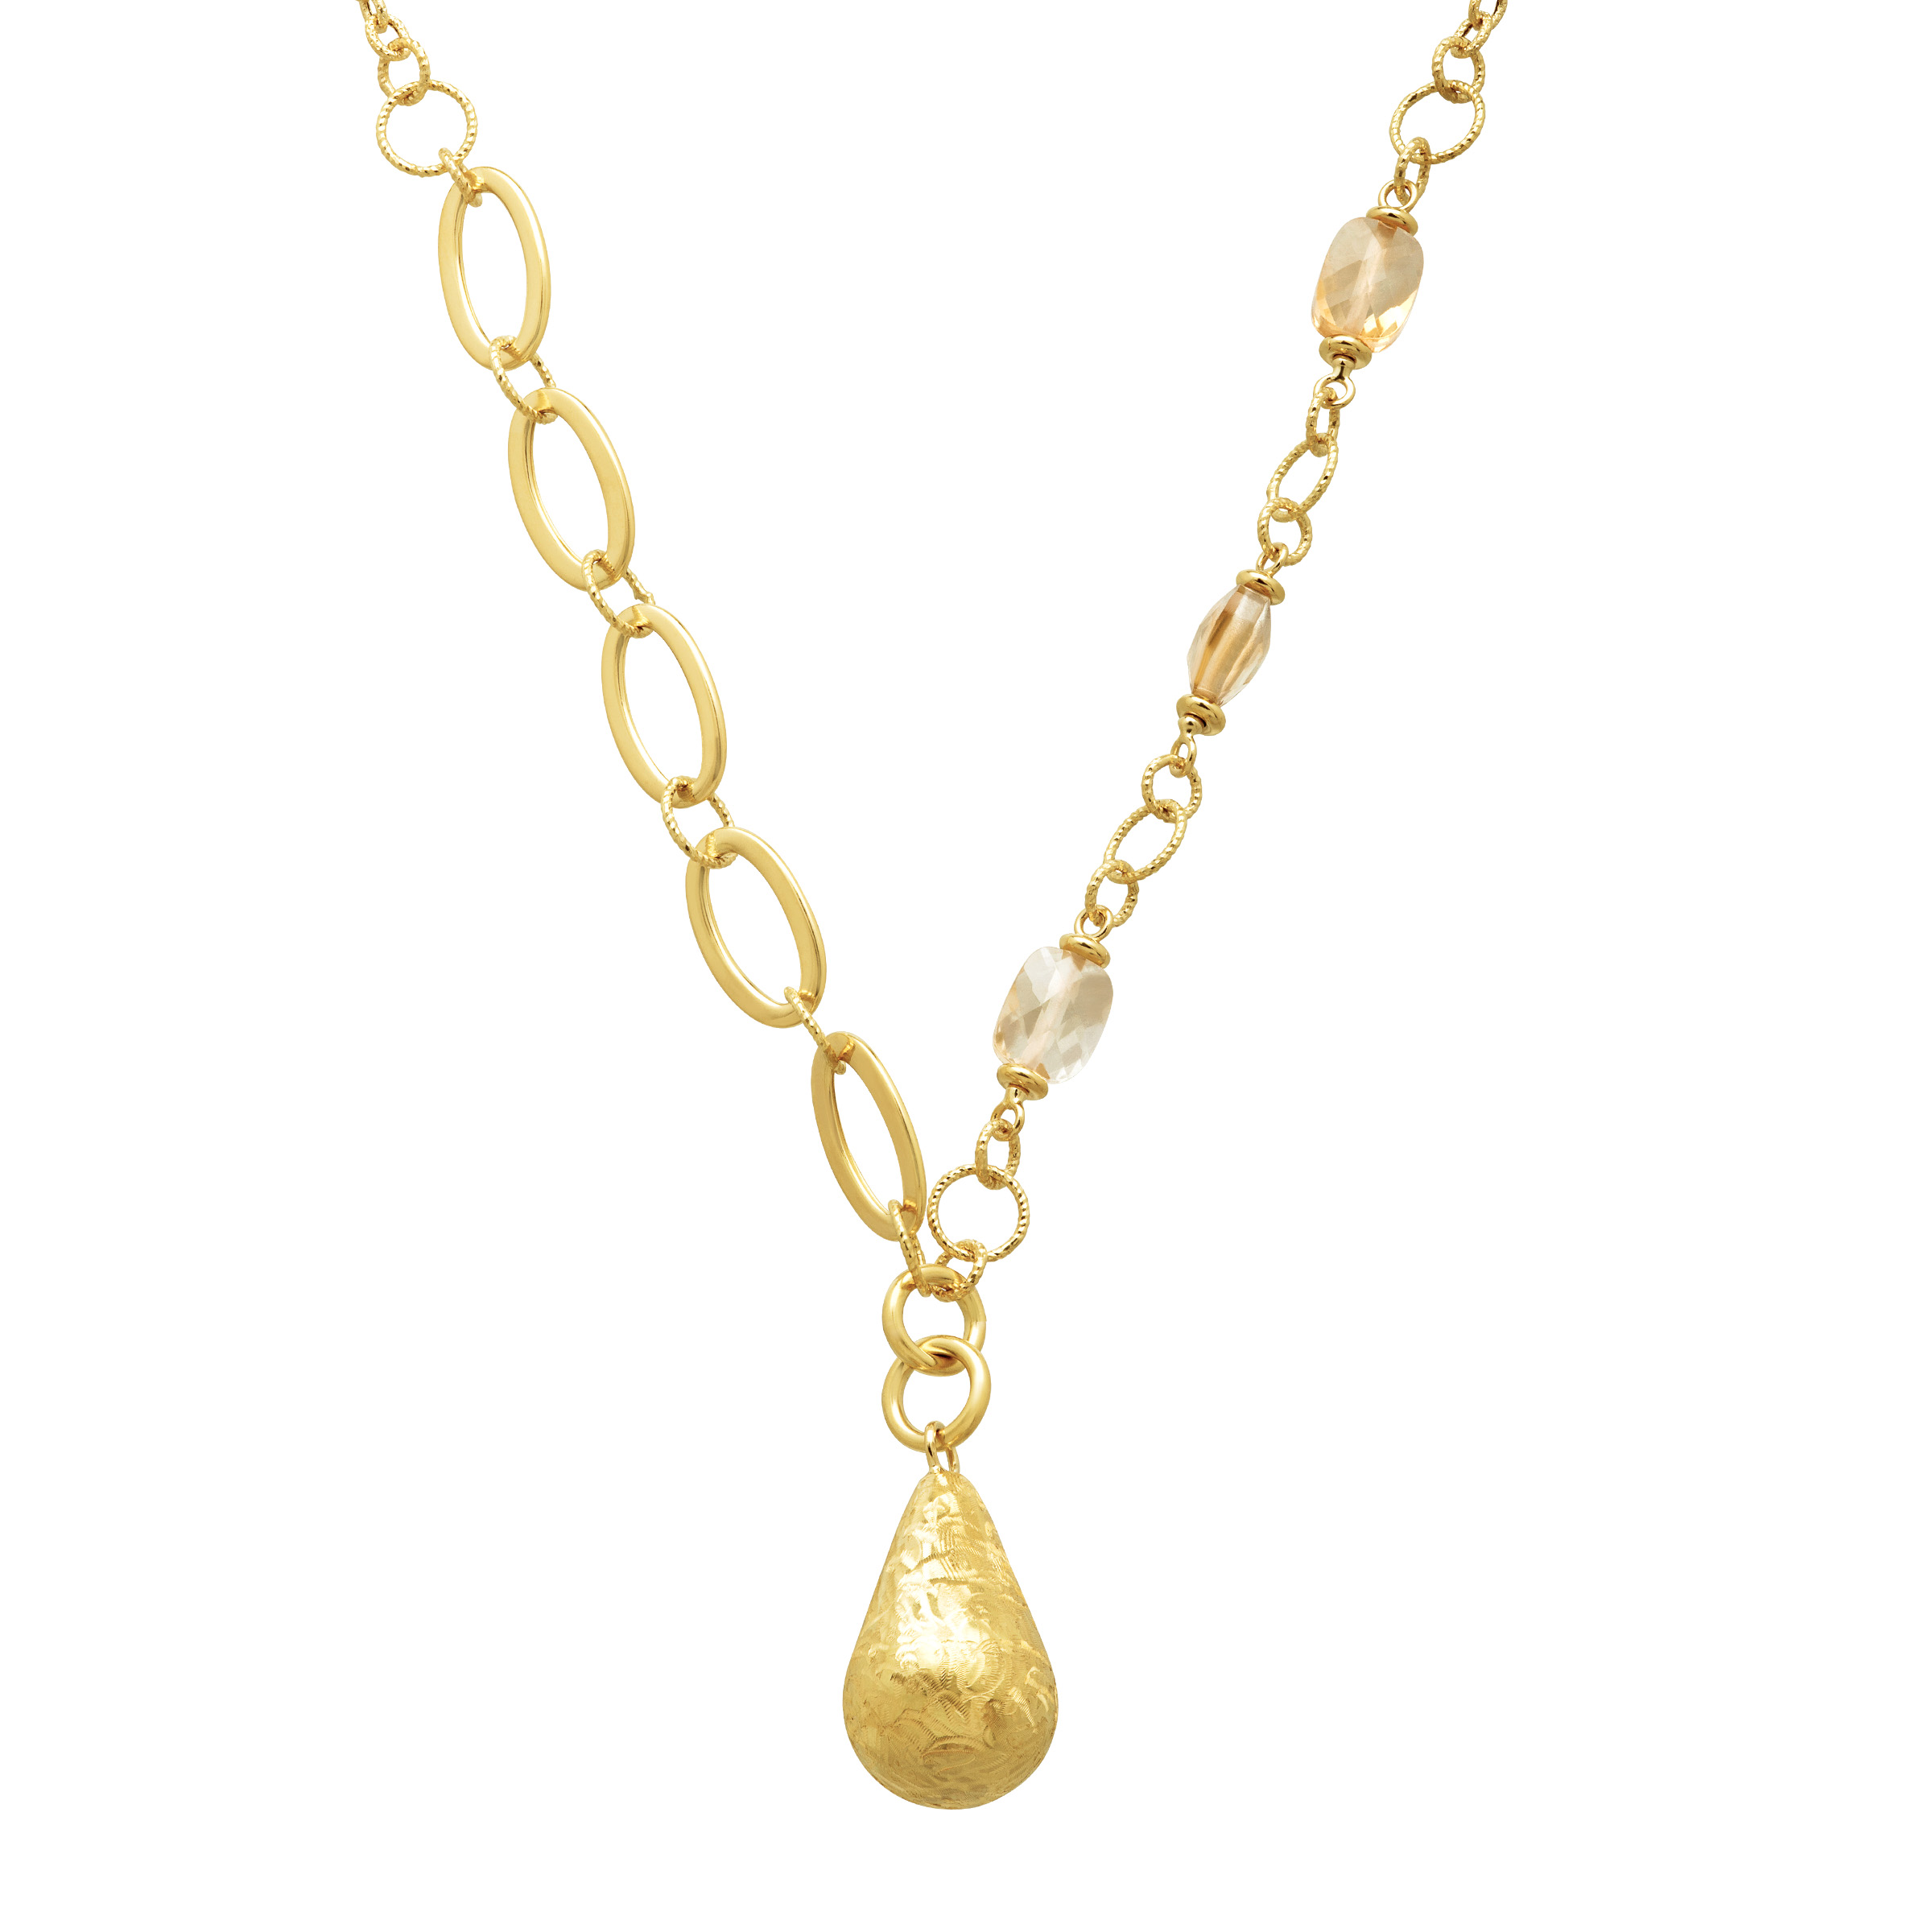 Natural Citrine Drop Link Necklace in 18kt Gold by Richline Group